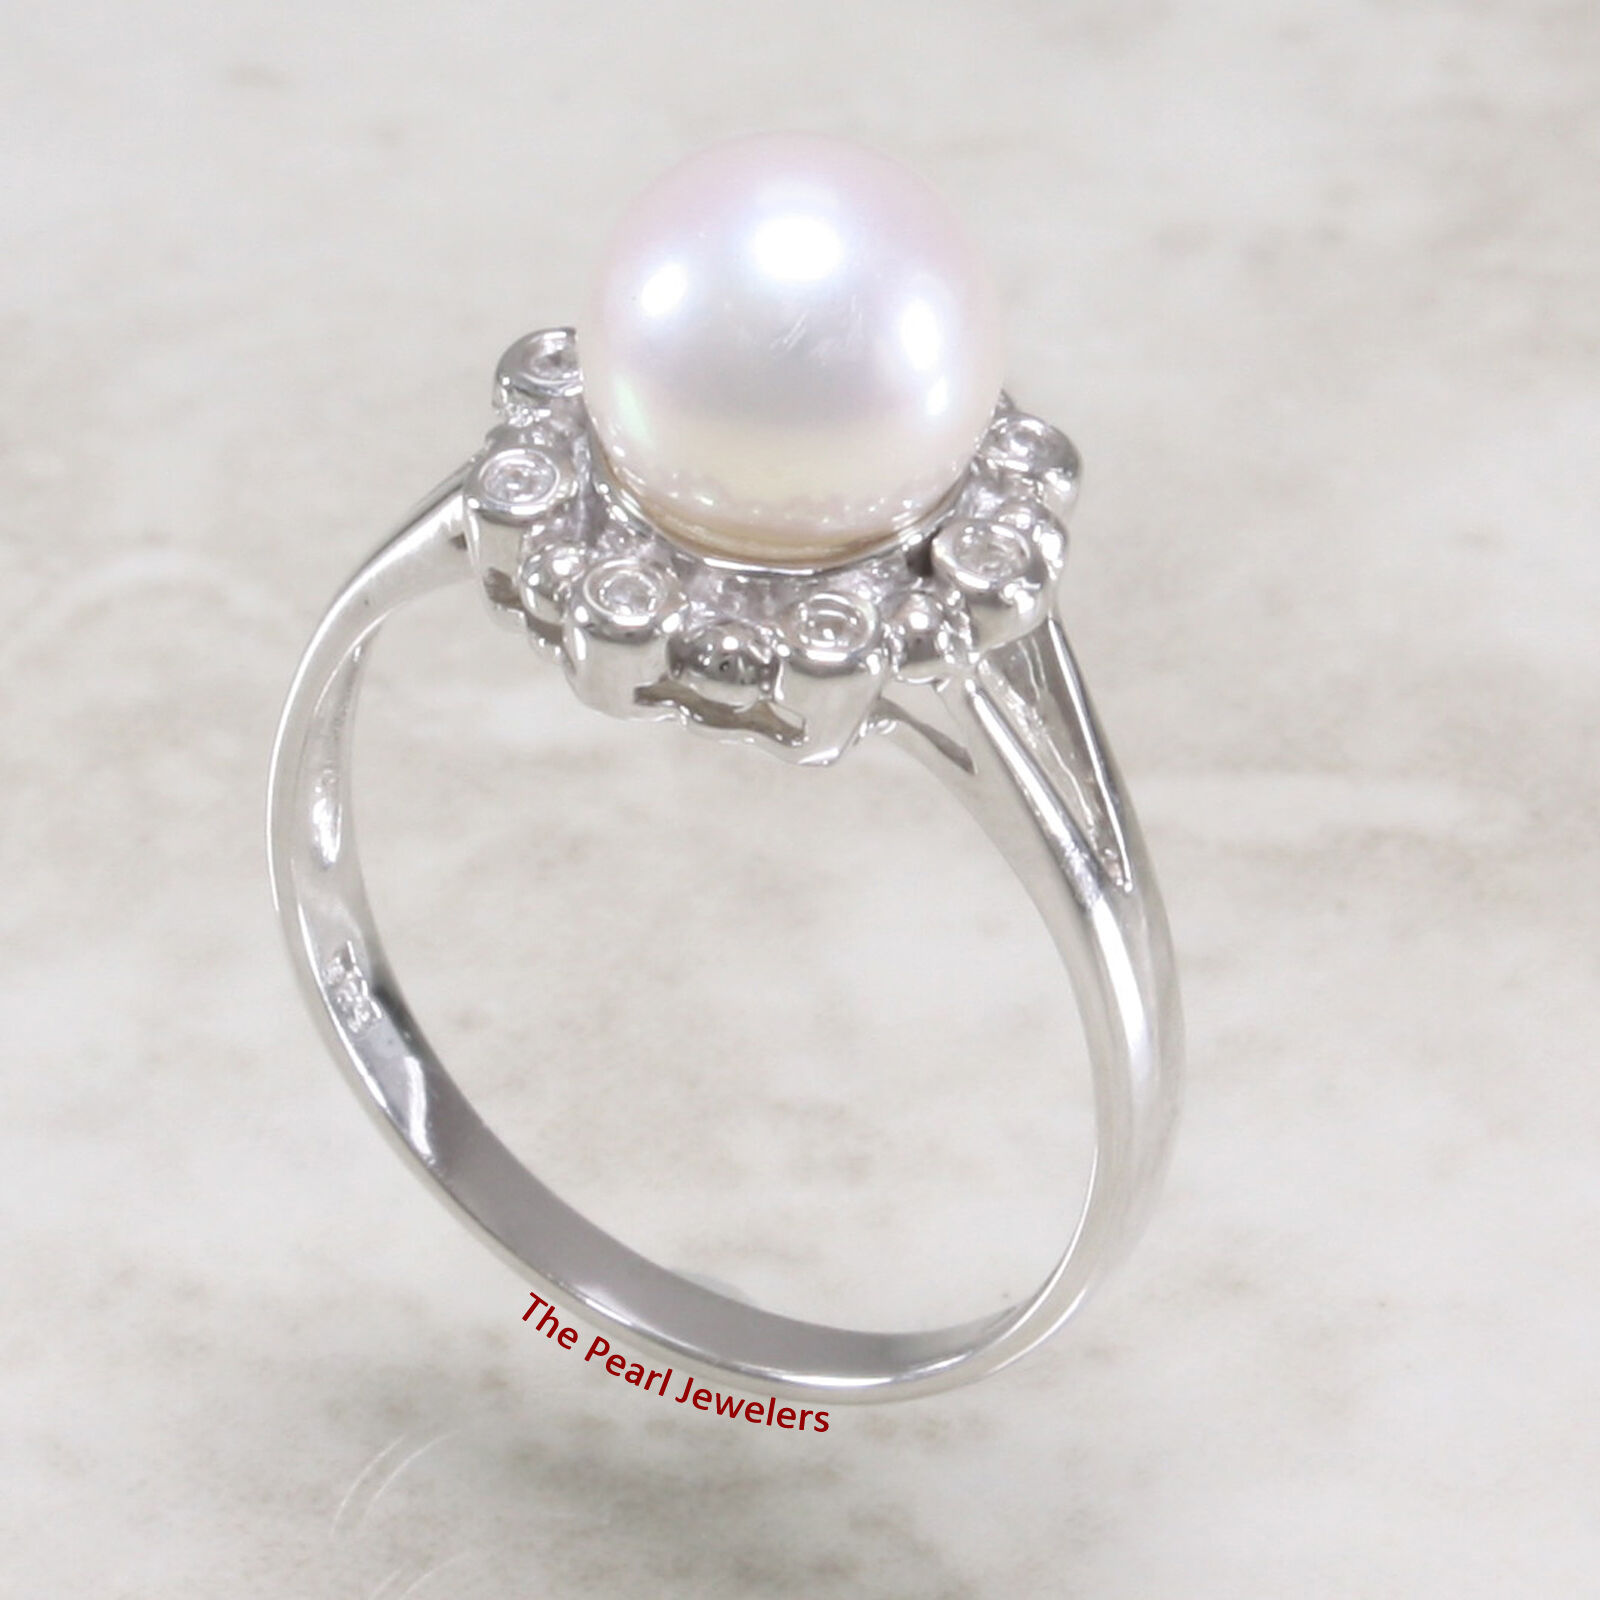 14k White gold Round White Genuine Cultured Pearl & Diamond Solitaire Ring TPJ